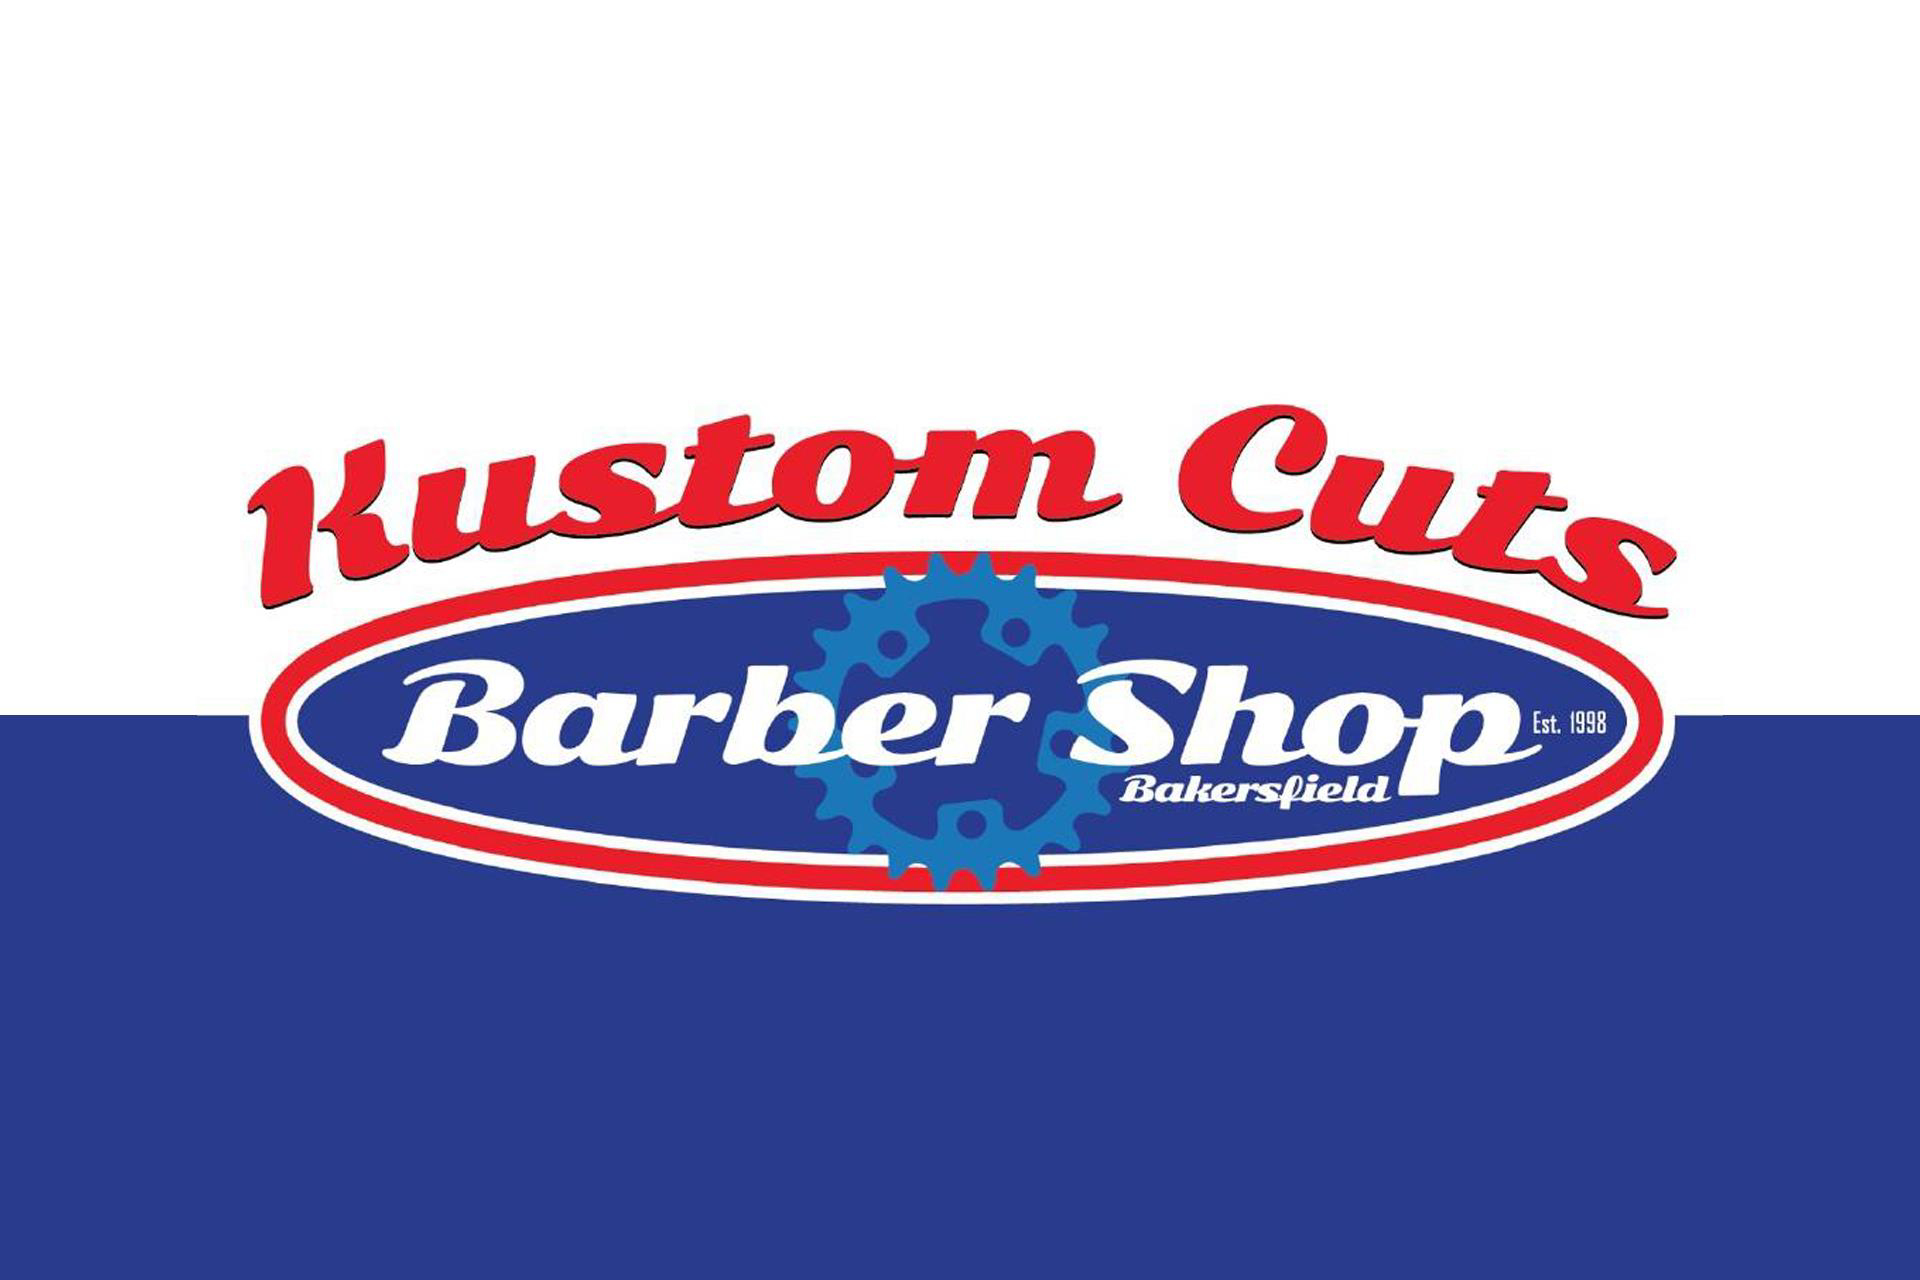 Kustom cuts barber shop in bakersfield ca vagaro kustom cuts barber shop reheart Image collections